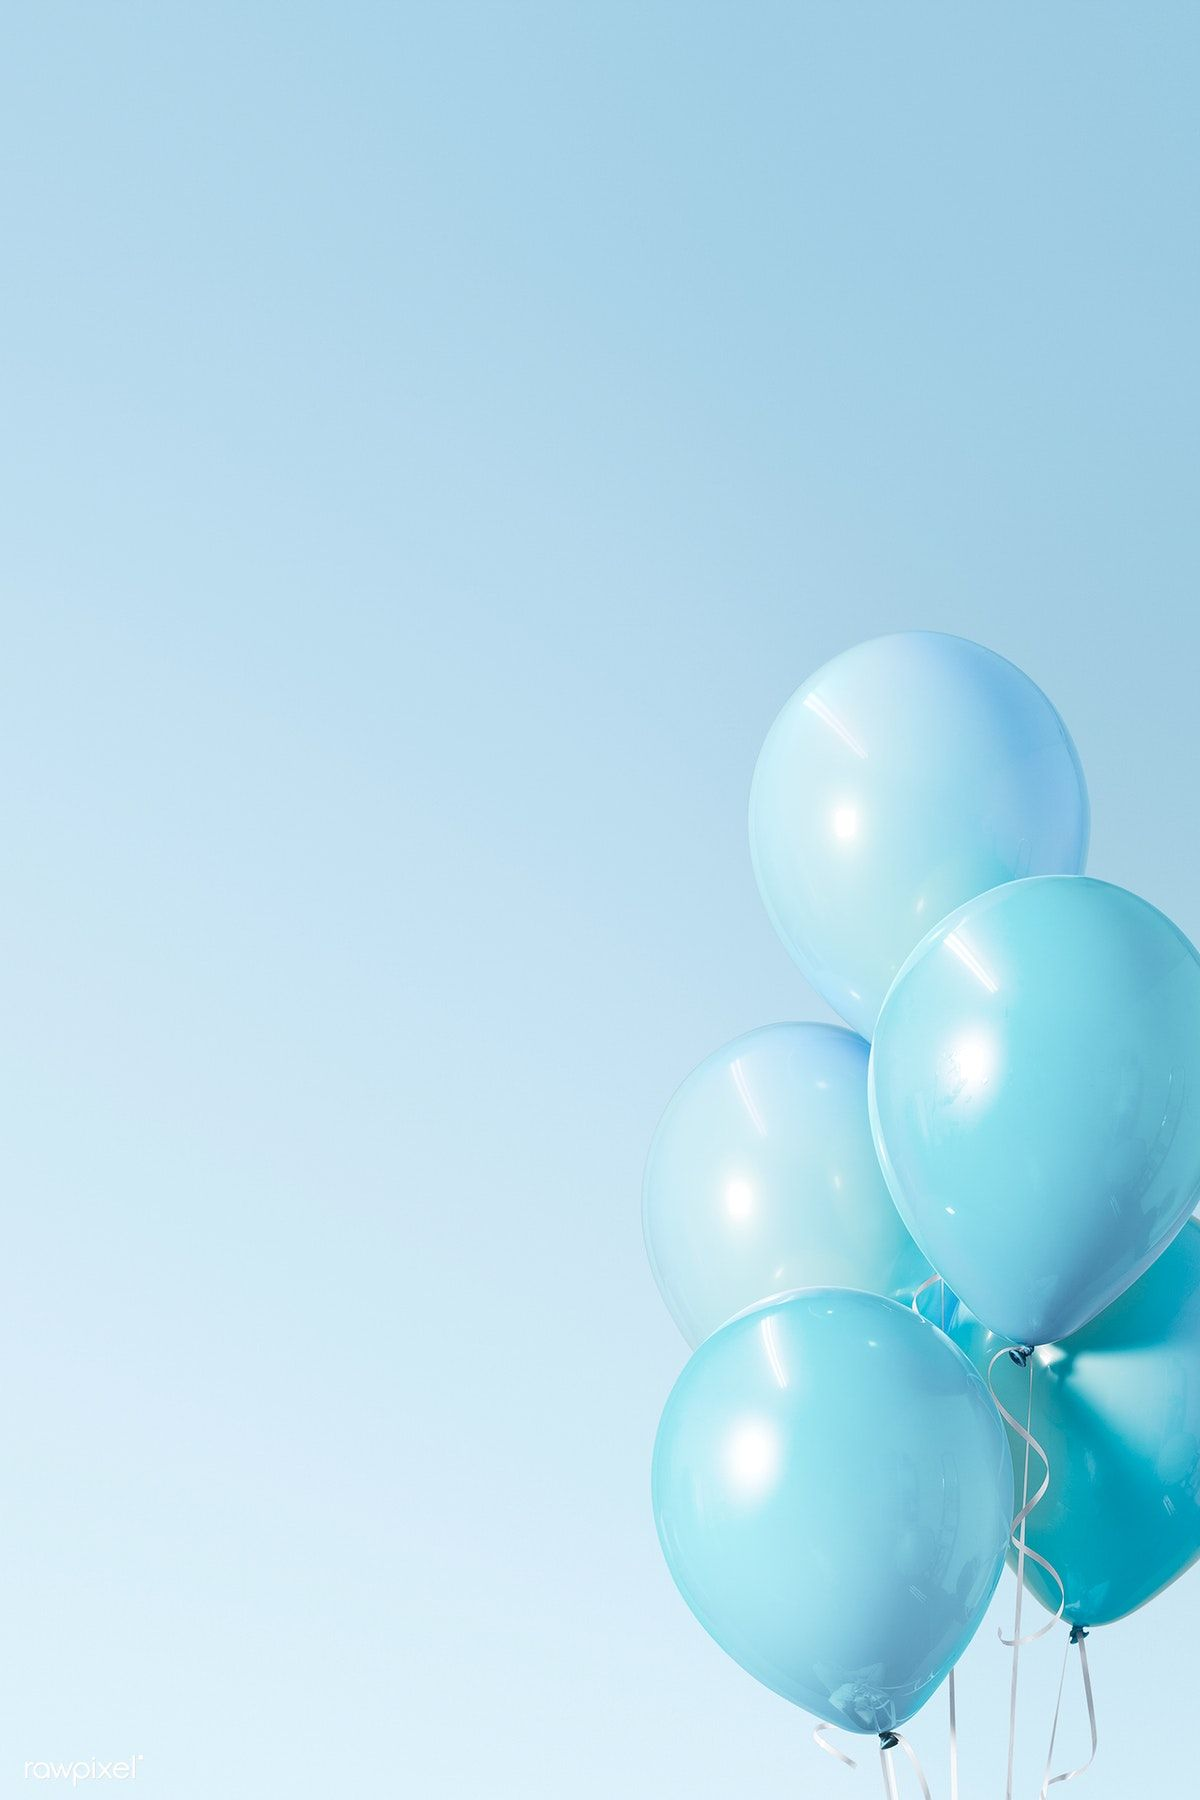 Download premium psd / image of Pastel blue balloons banner mockup by Jubjang about blue ballon, Birthday boy, birthday background, birthday balloon, and its a boy 1224772